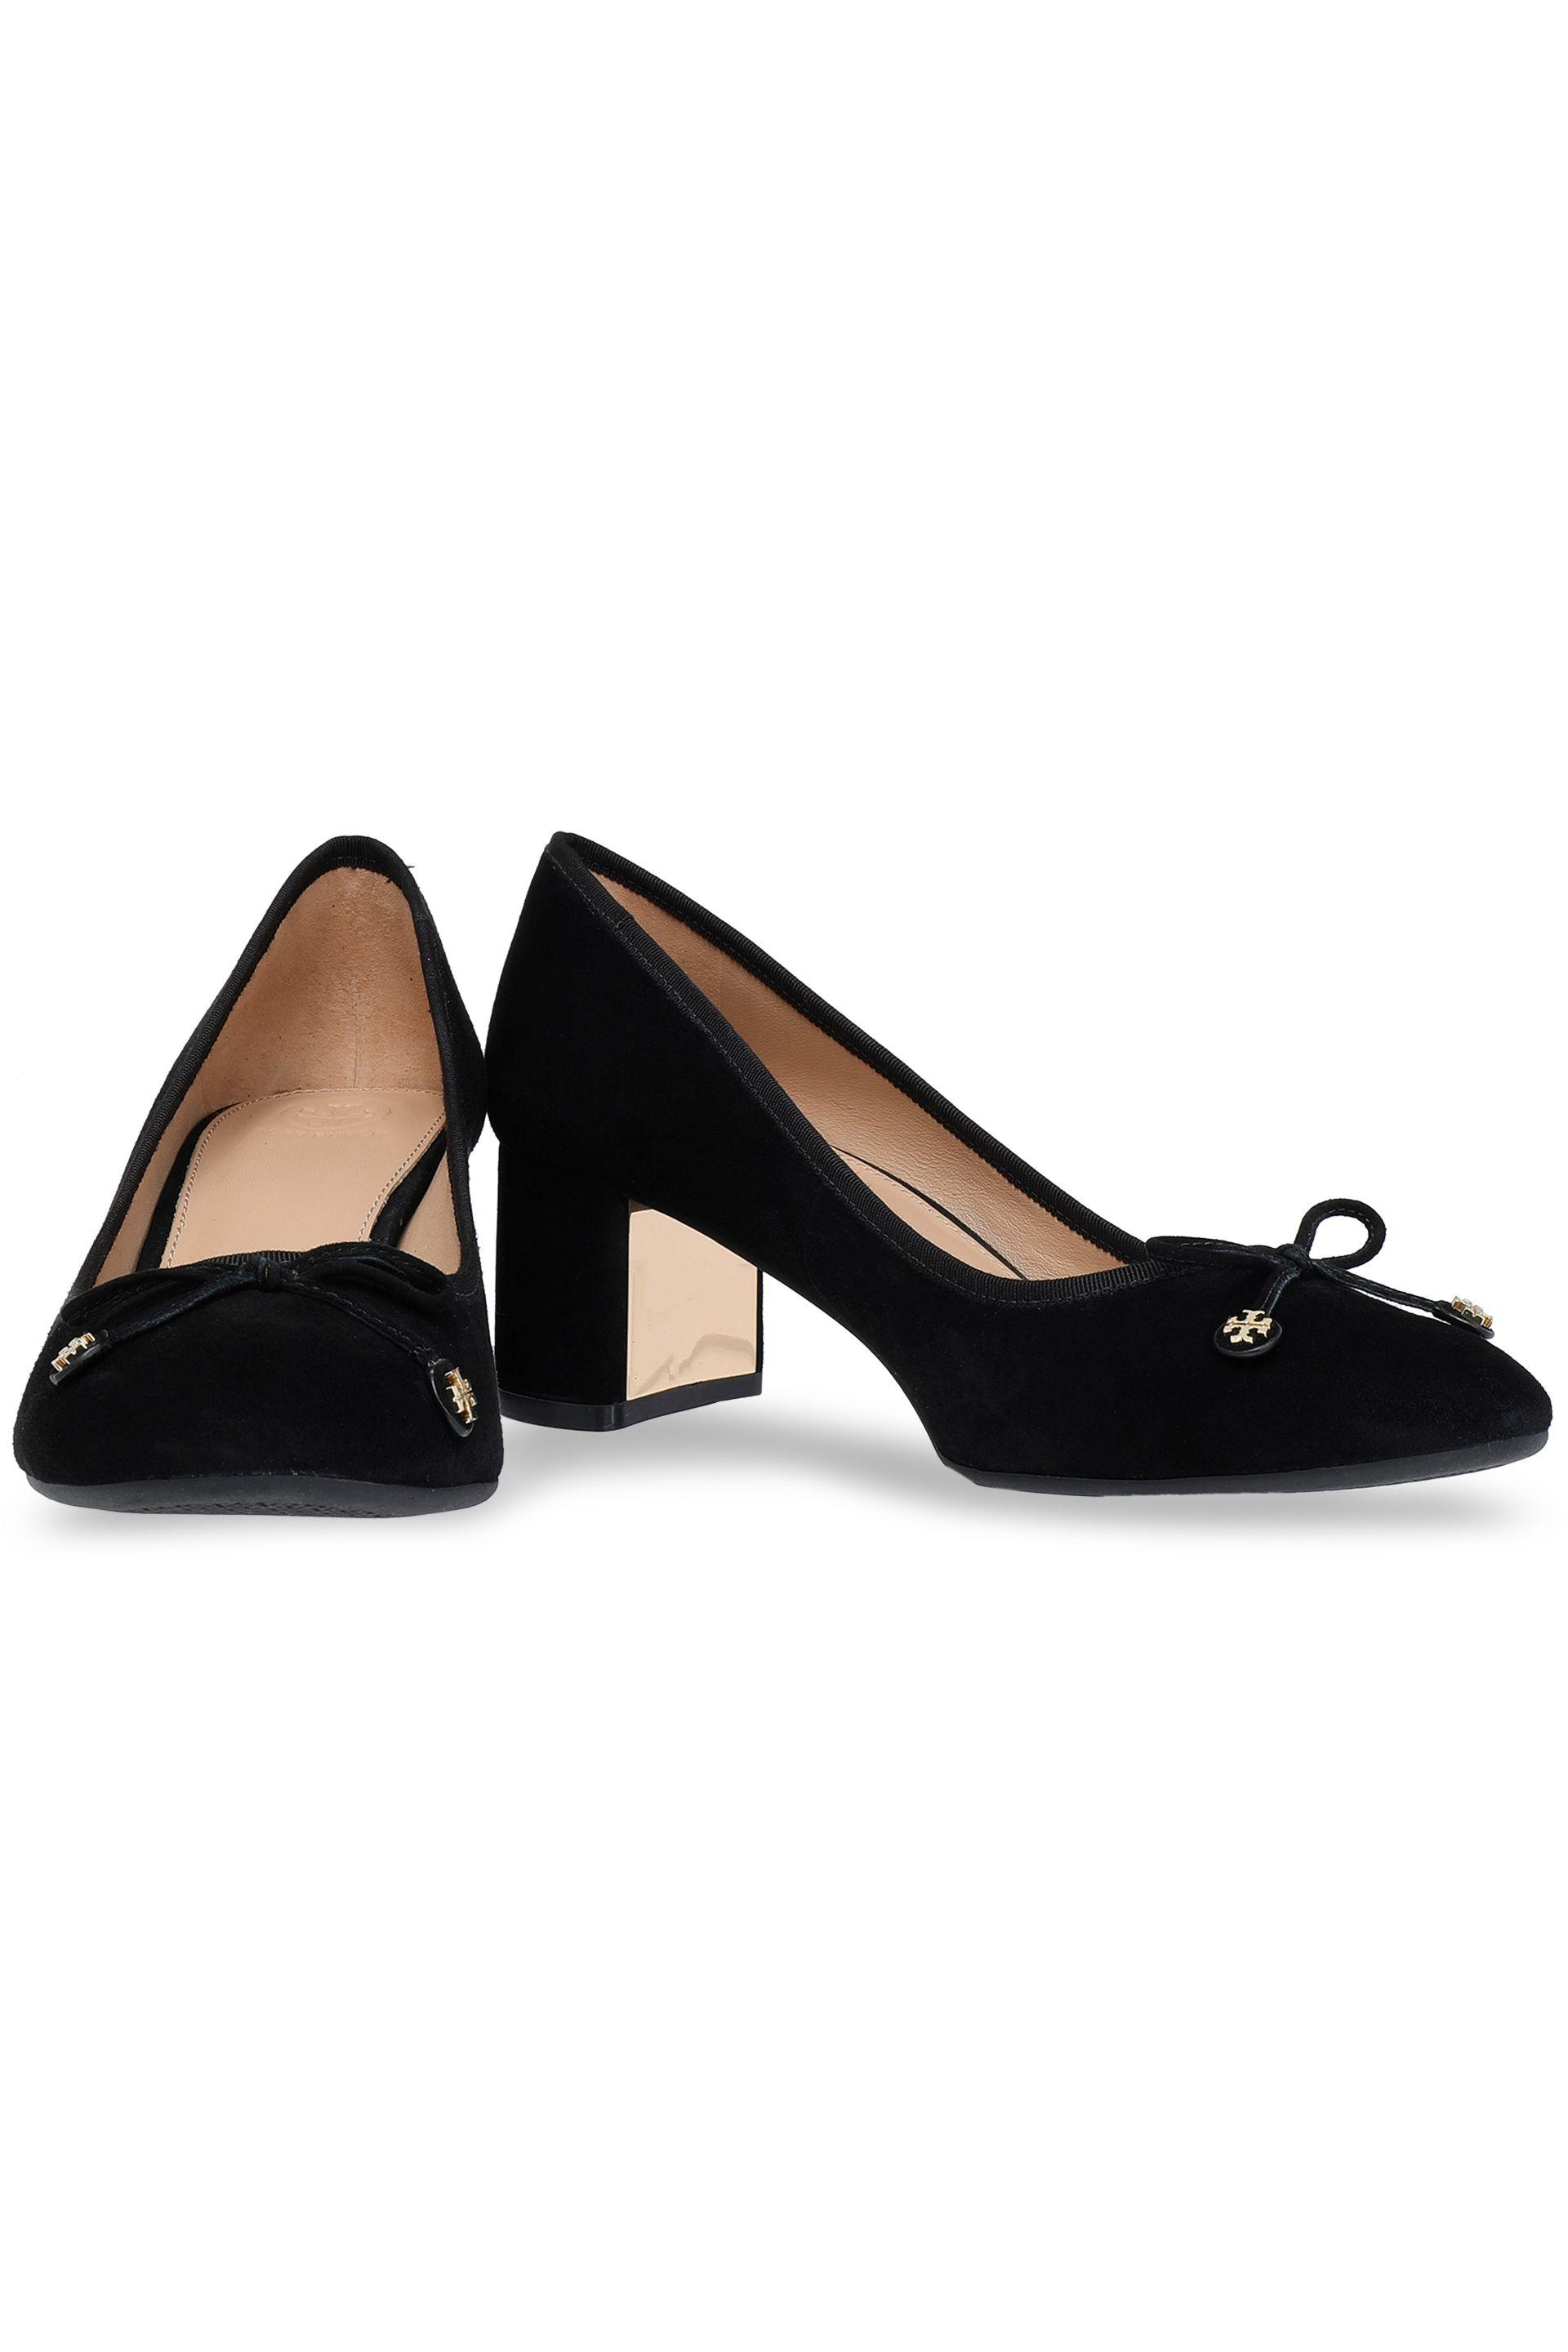 37595ce1fc52 Tory Burch - Woman Bow-detailed Suede Pumps Black - Lyst. View fullscreen